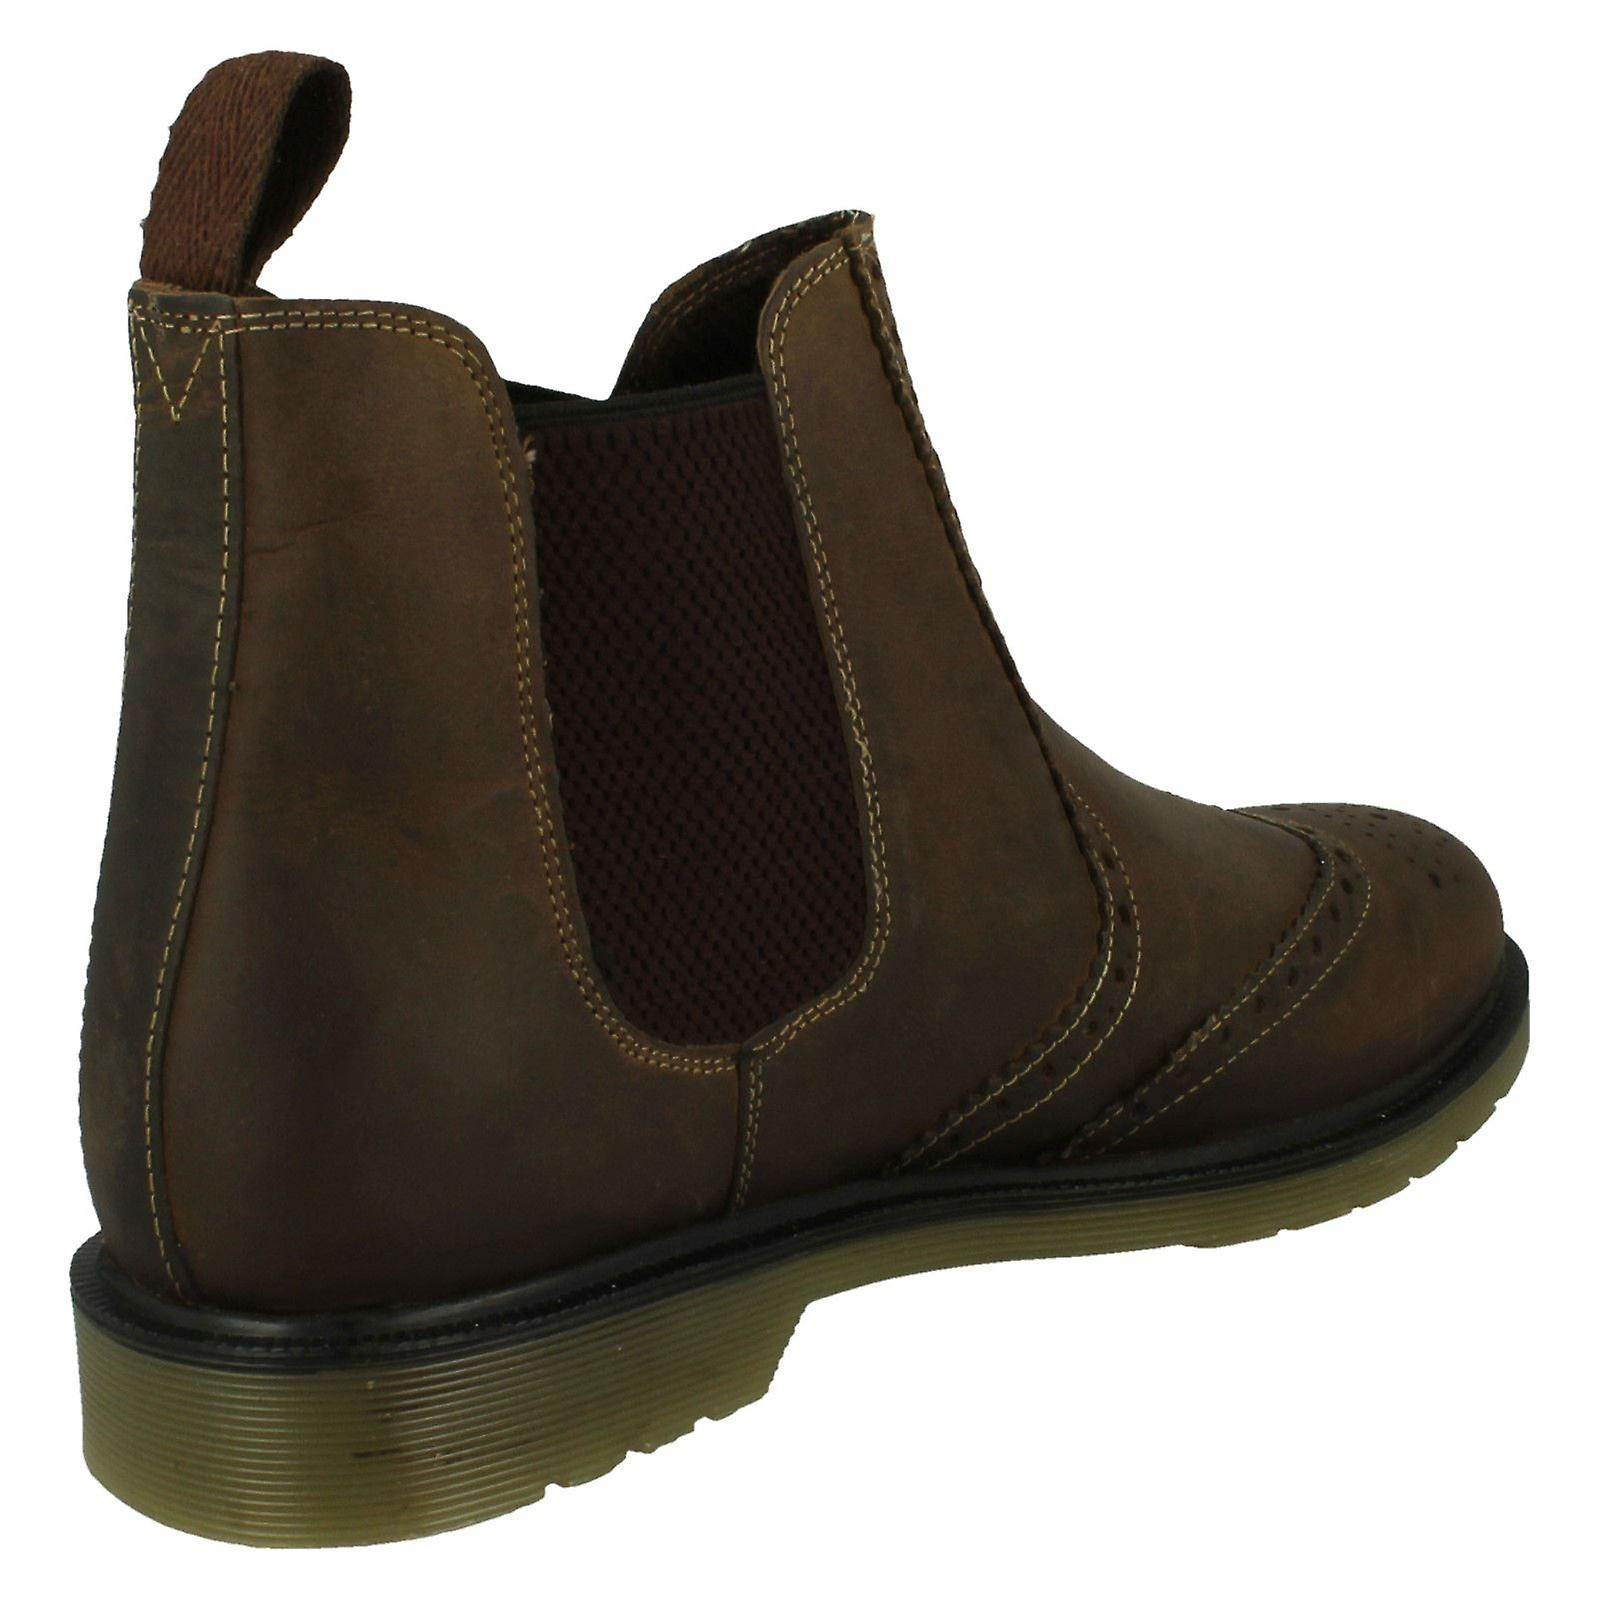 Boots Size 7 8 Belper Leather 10 Mens 41 M120404 Brown Size UK US EU Oak Size Trak Chelsea ItwIxPvT